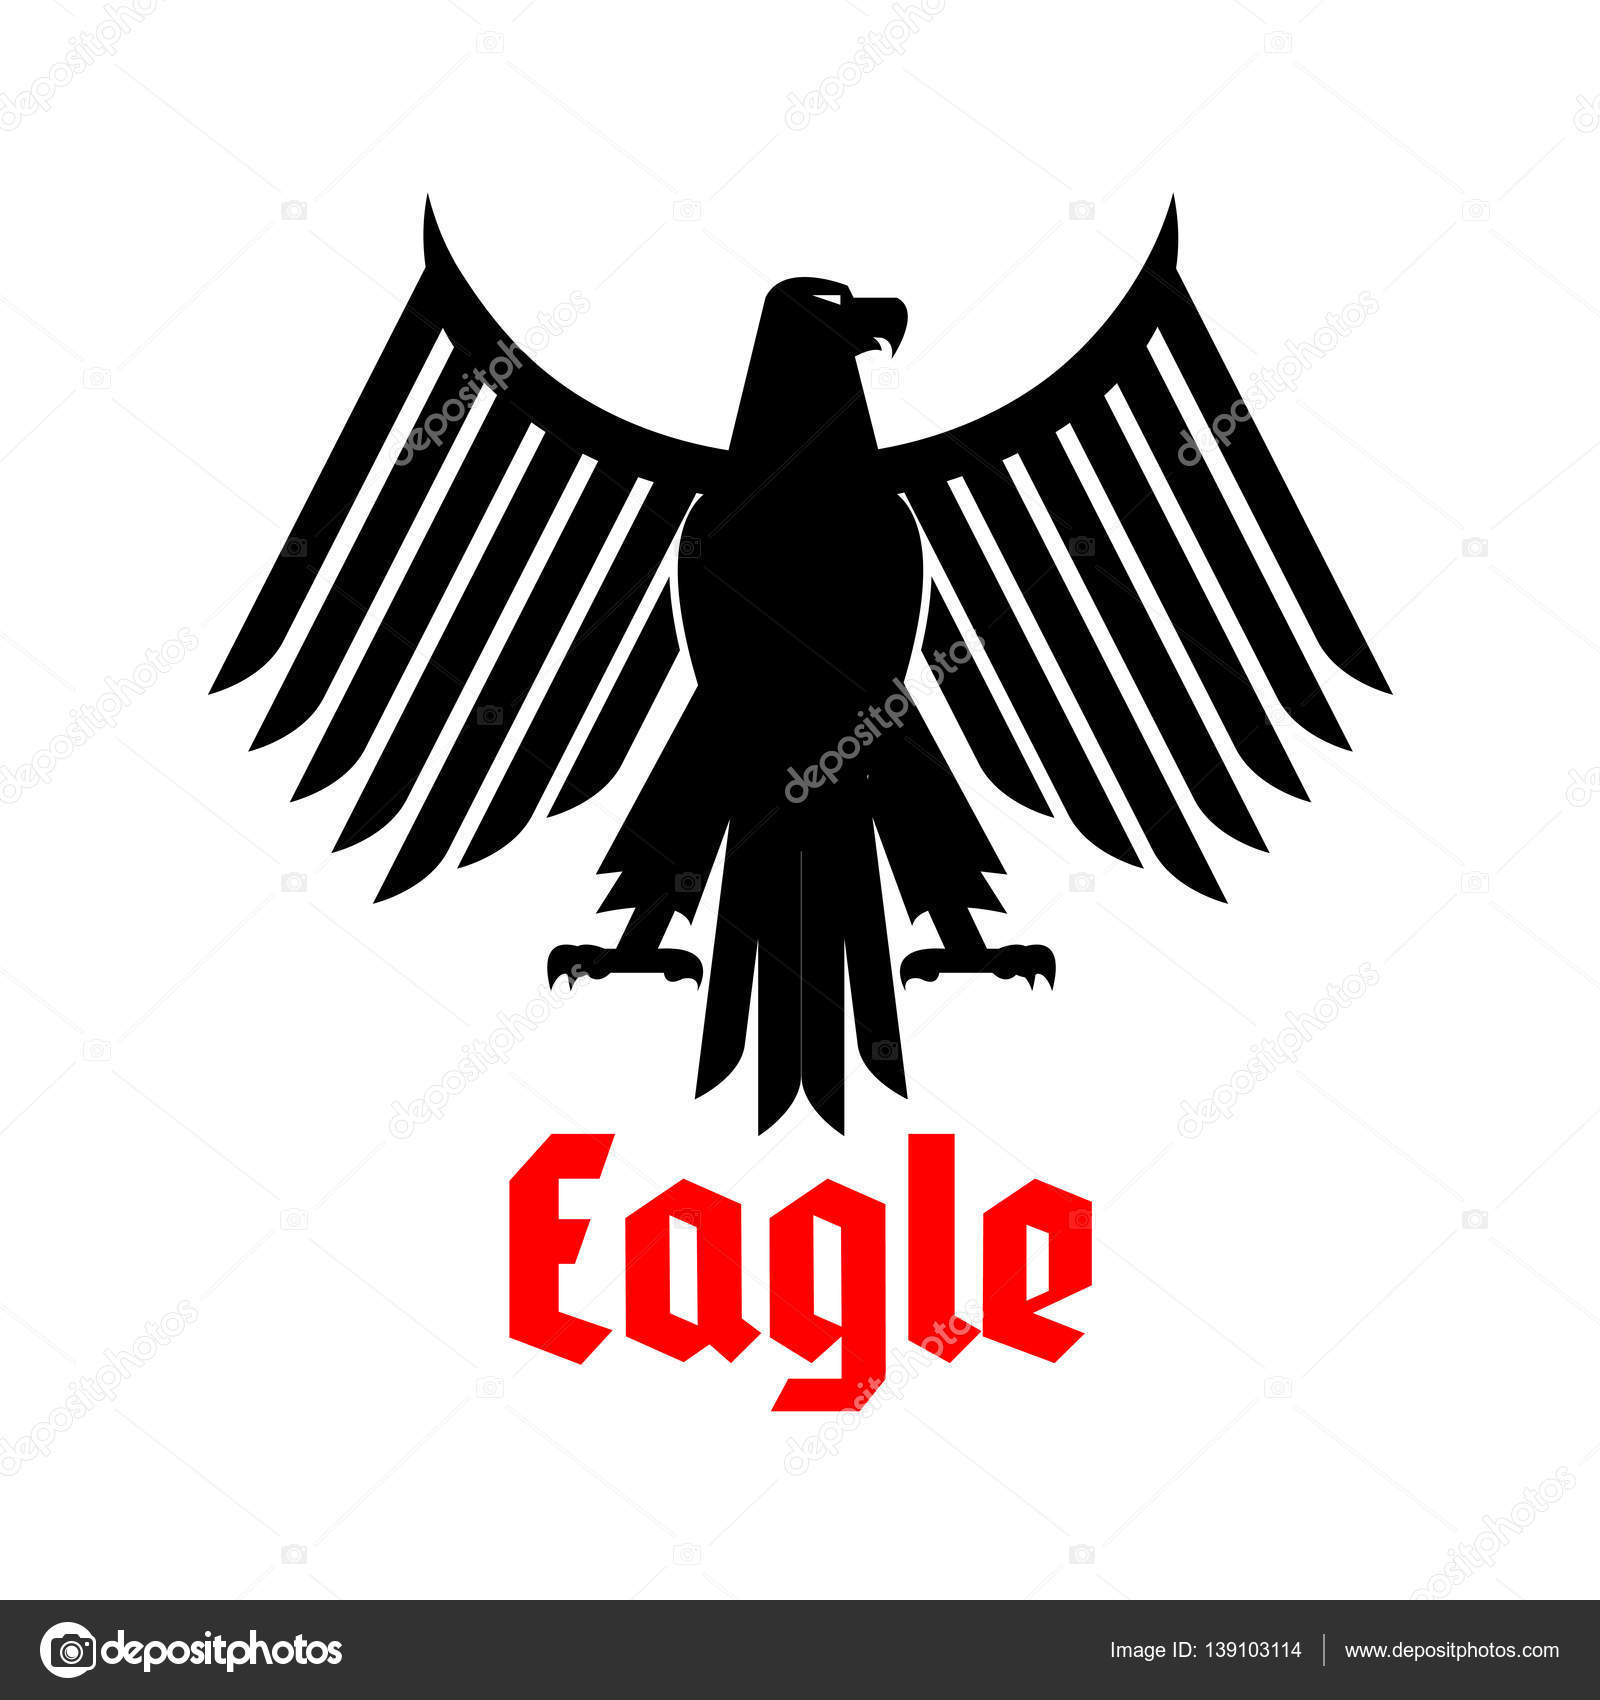 Heraldic icon of black eagle vector sign stock vector black eagle heraldic or crest emblem gothic or imperial falcon or hawk symbol vector isolated icon of sign of phoenix with open spread wings and sharp biocorpaavc Images